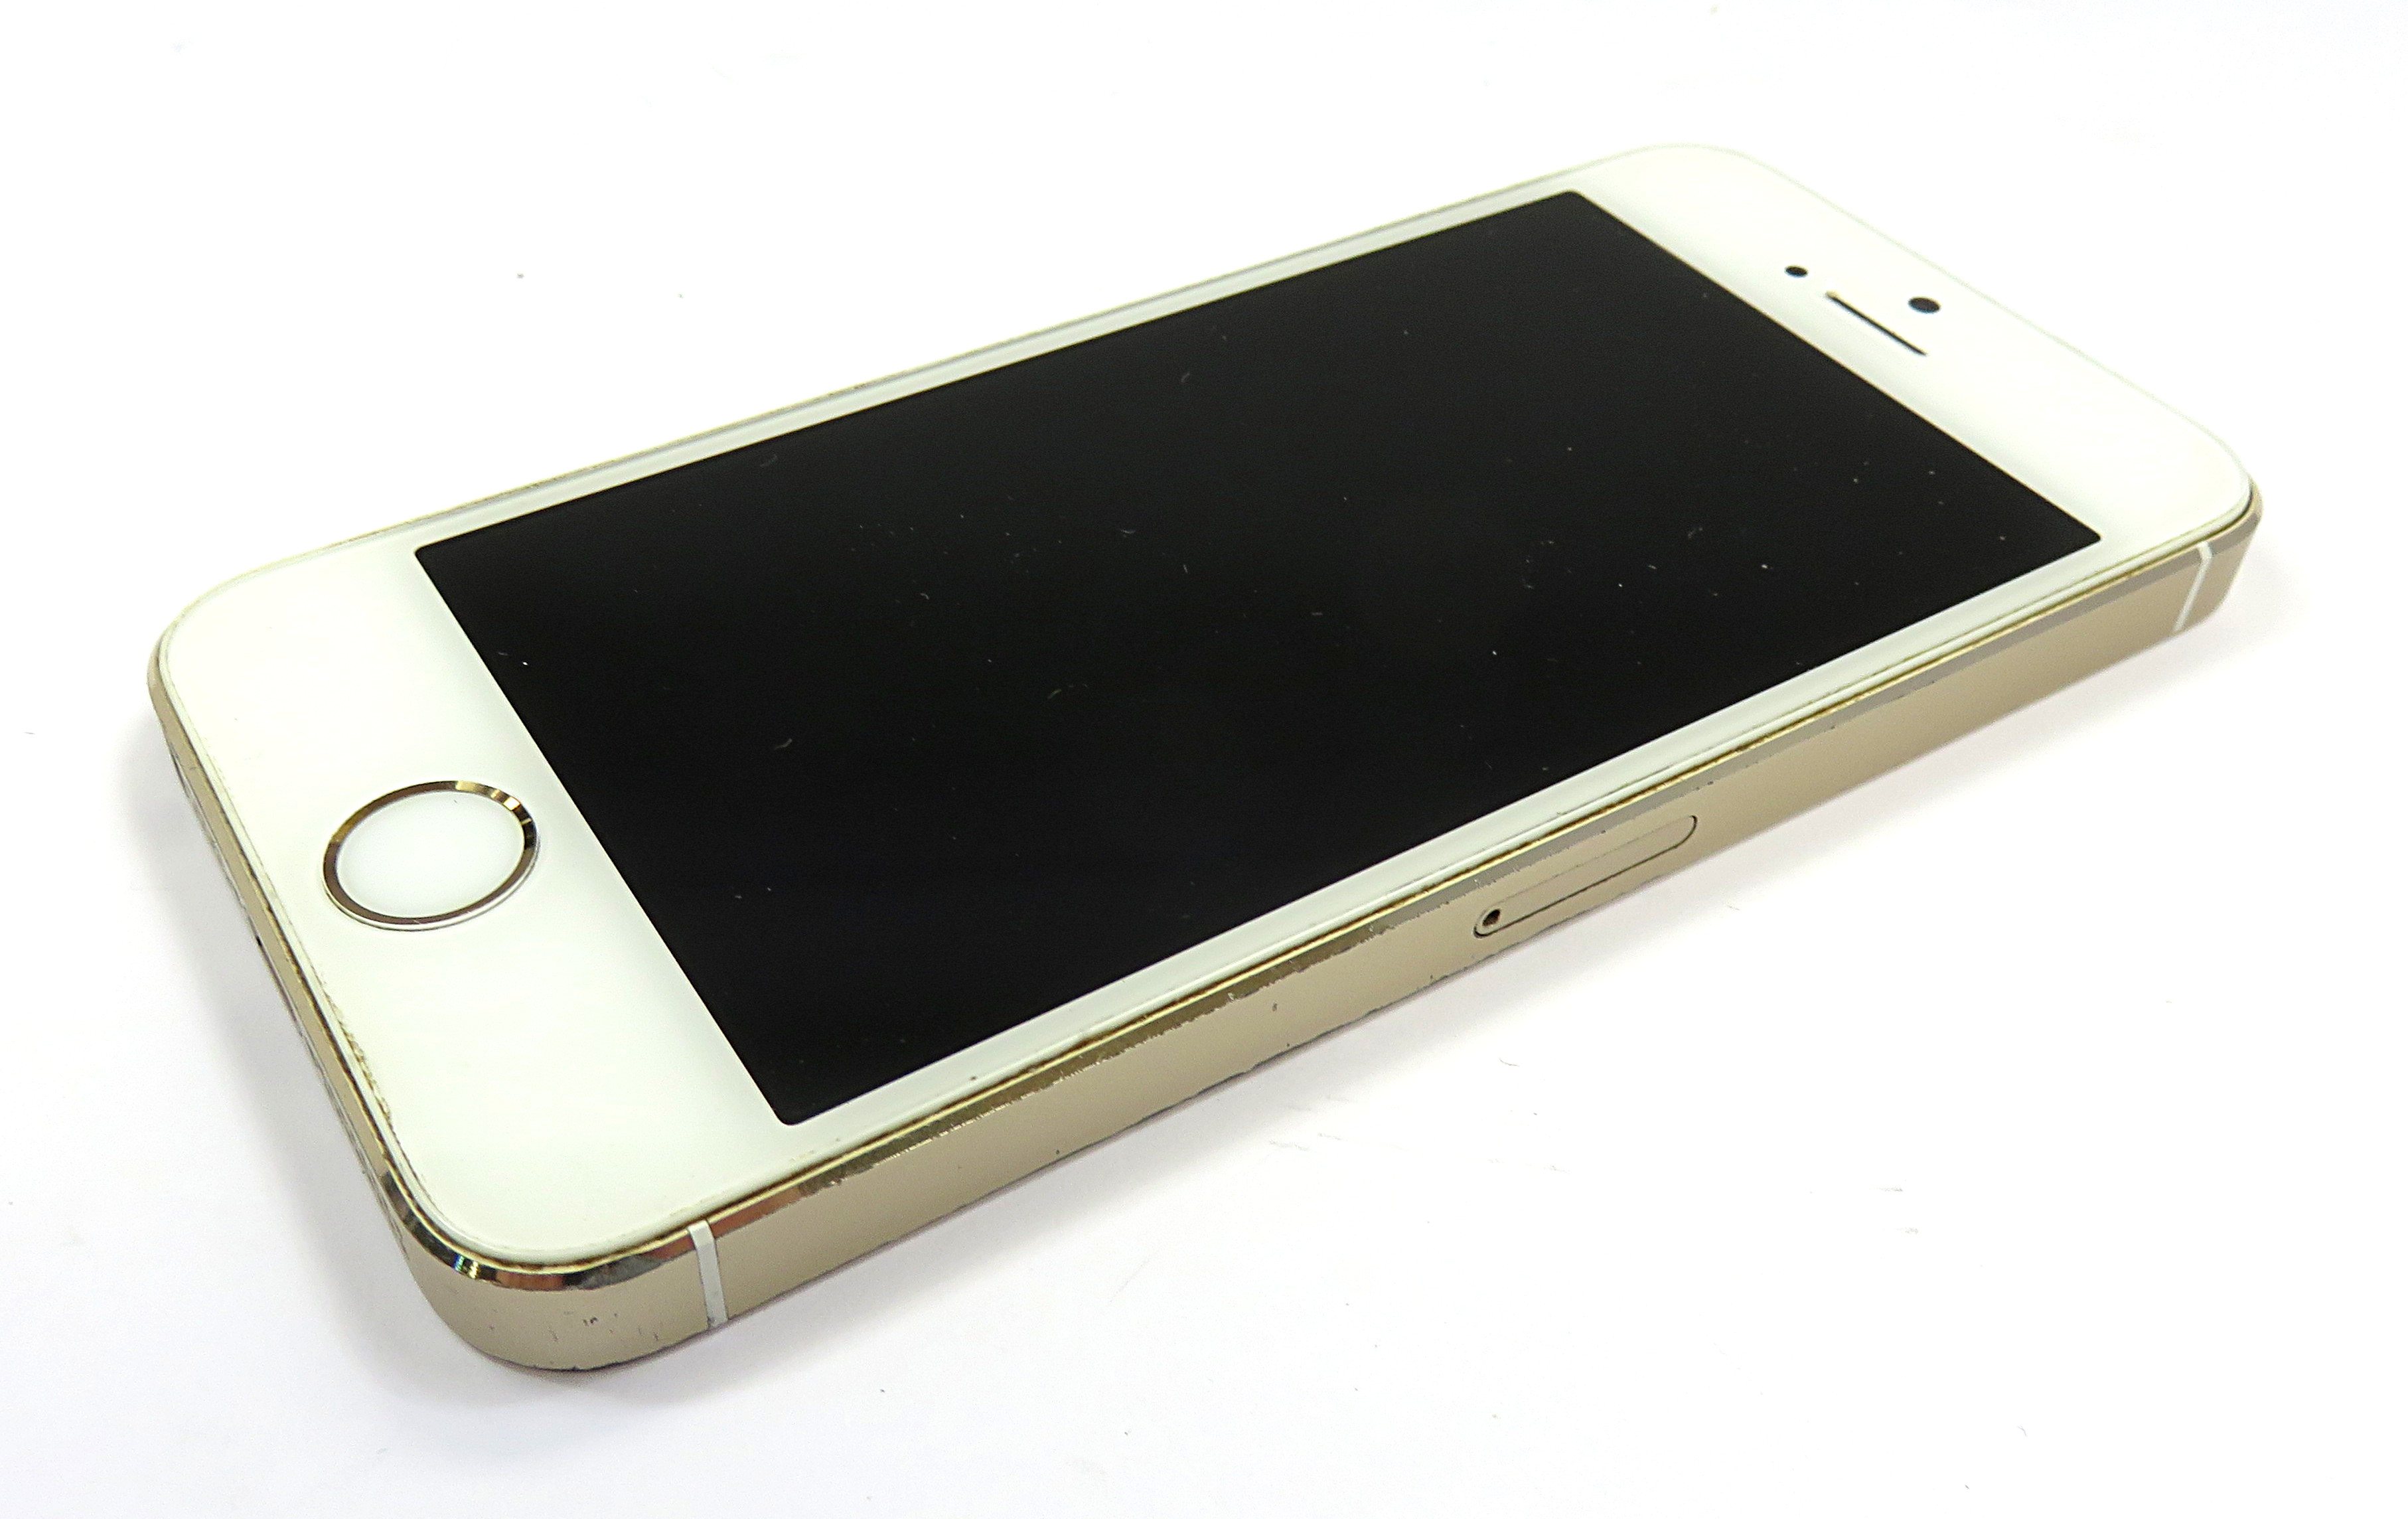 apple a1457 iphone 5s 32gb unlocked gold boxed ebay. Black Bedroom Furniture Sets. Home Design Ideas